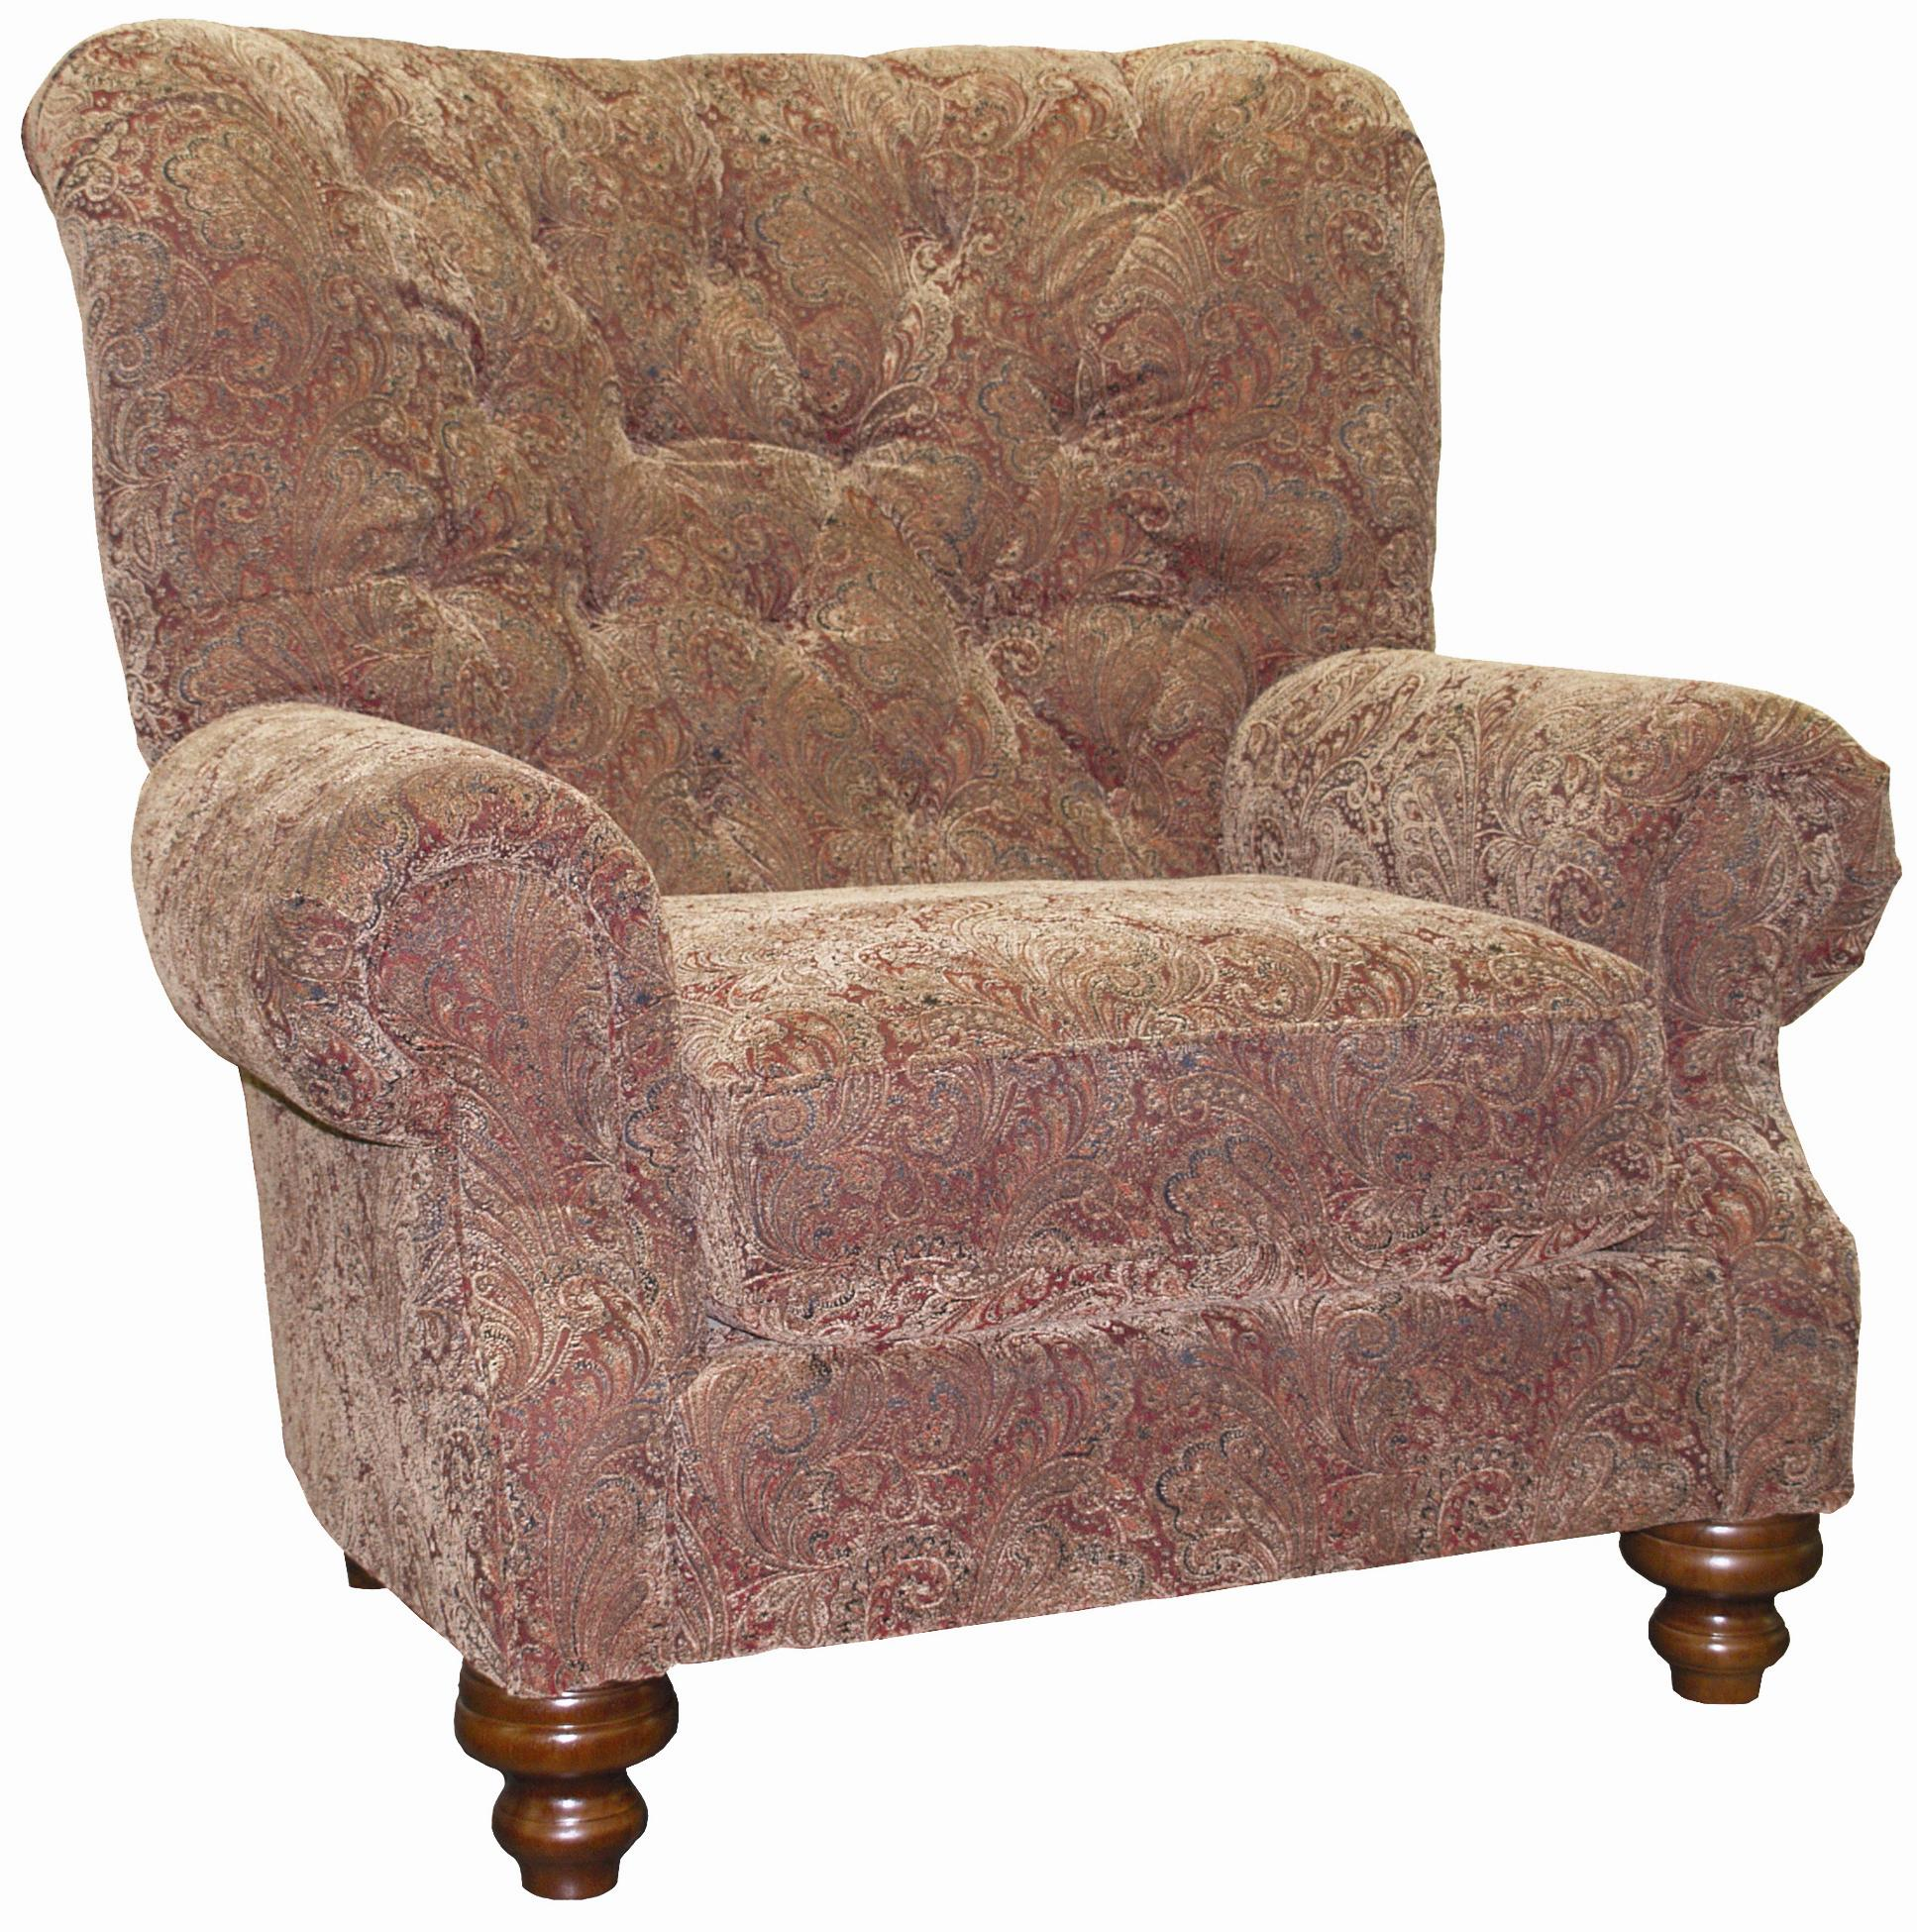 Mayo 9310 Chair - Item Number: 9310-040